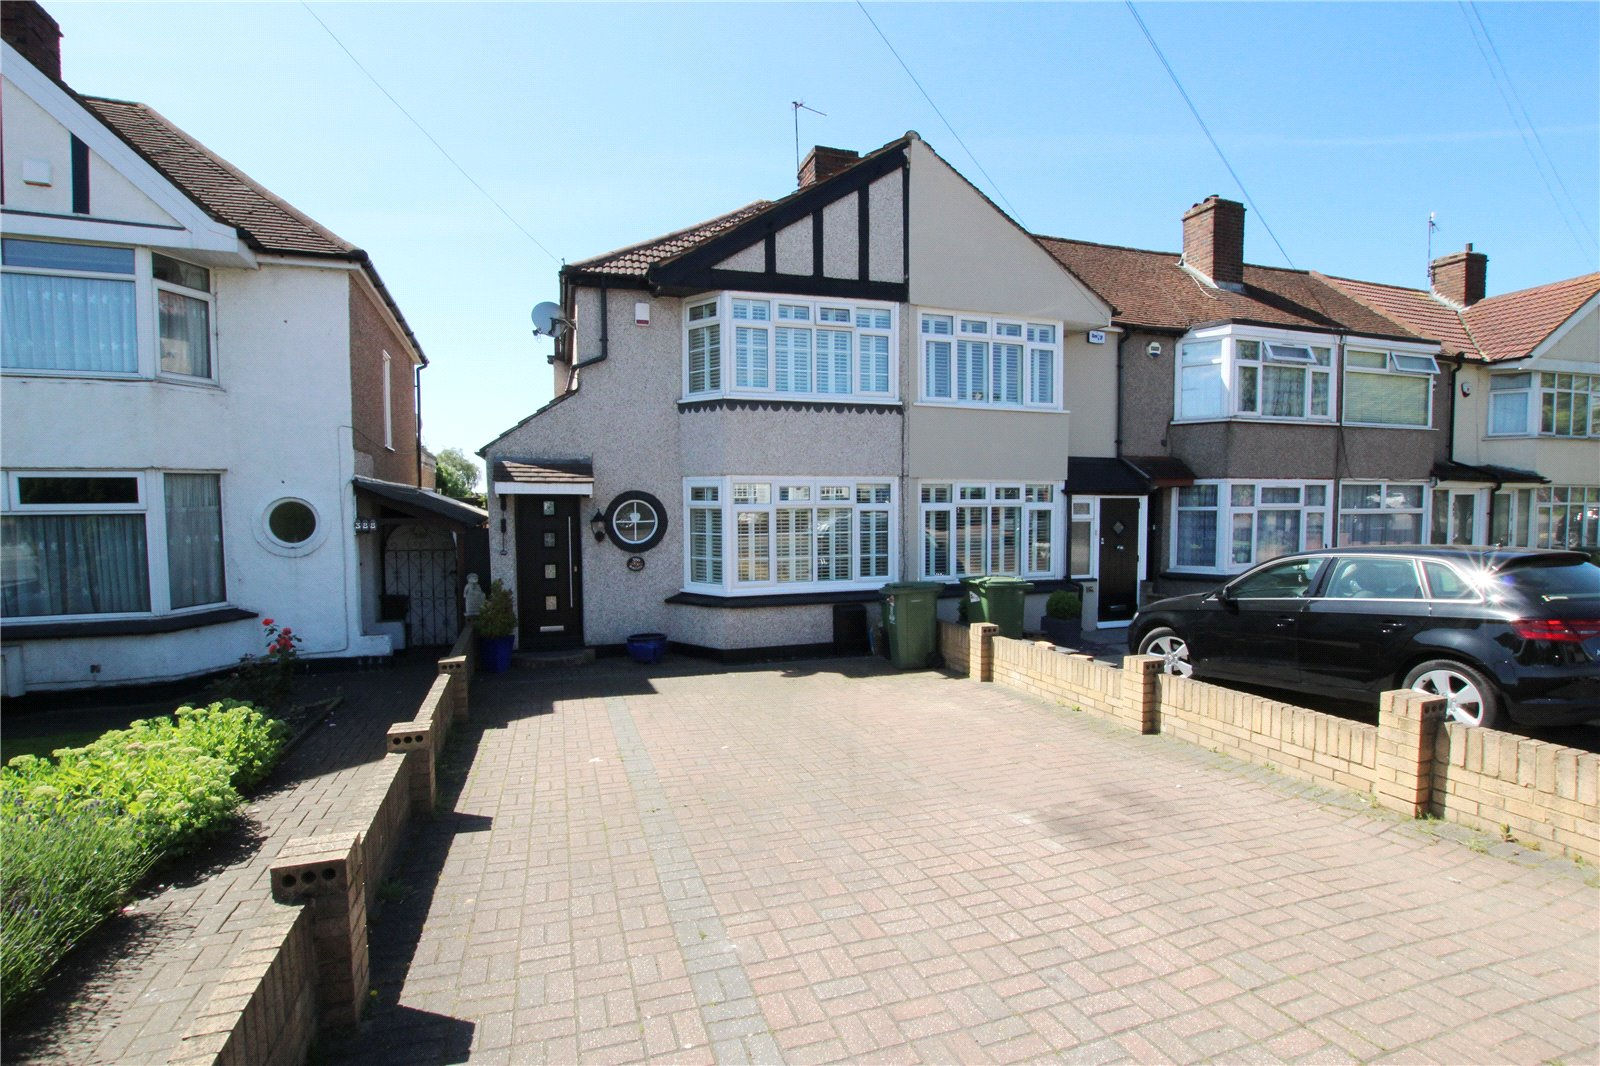 Blackfen Road, Blackfen, Kent, DA15